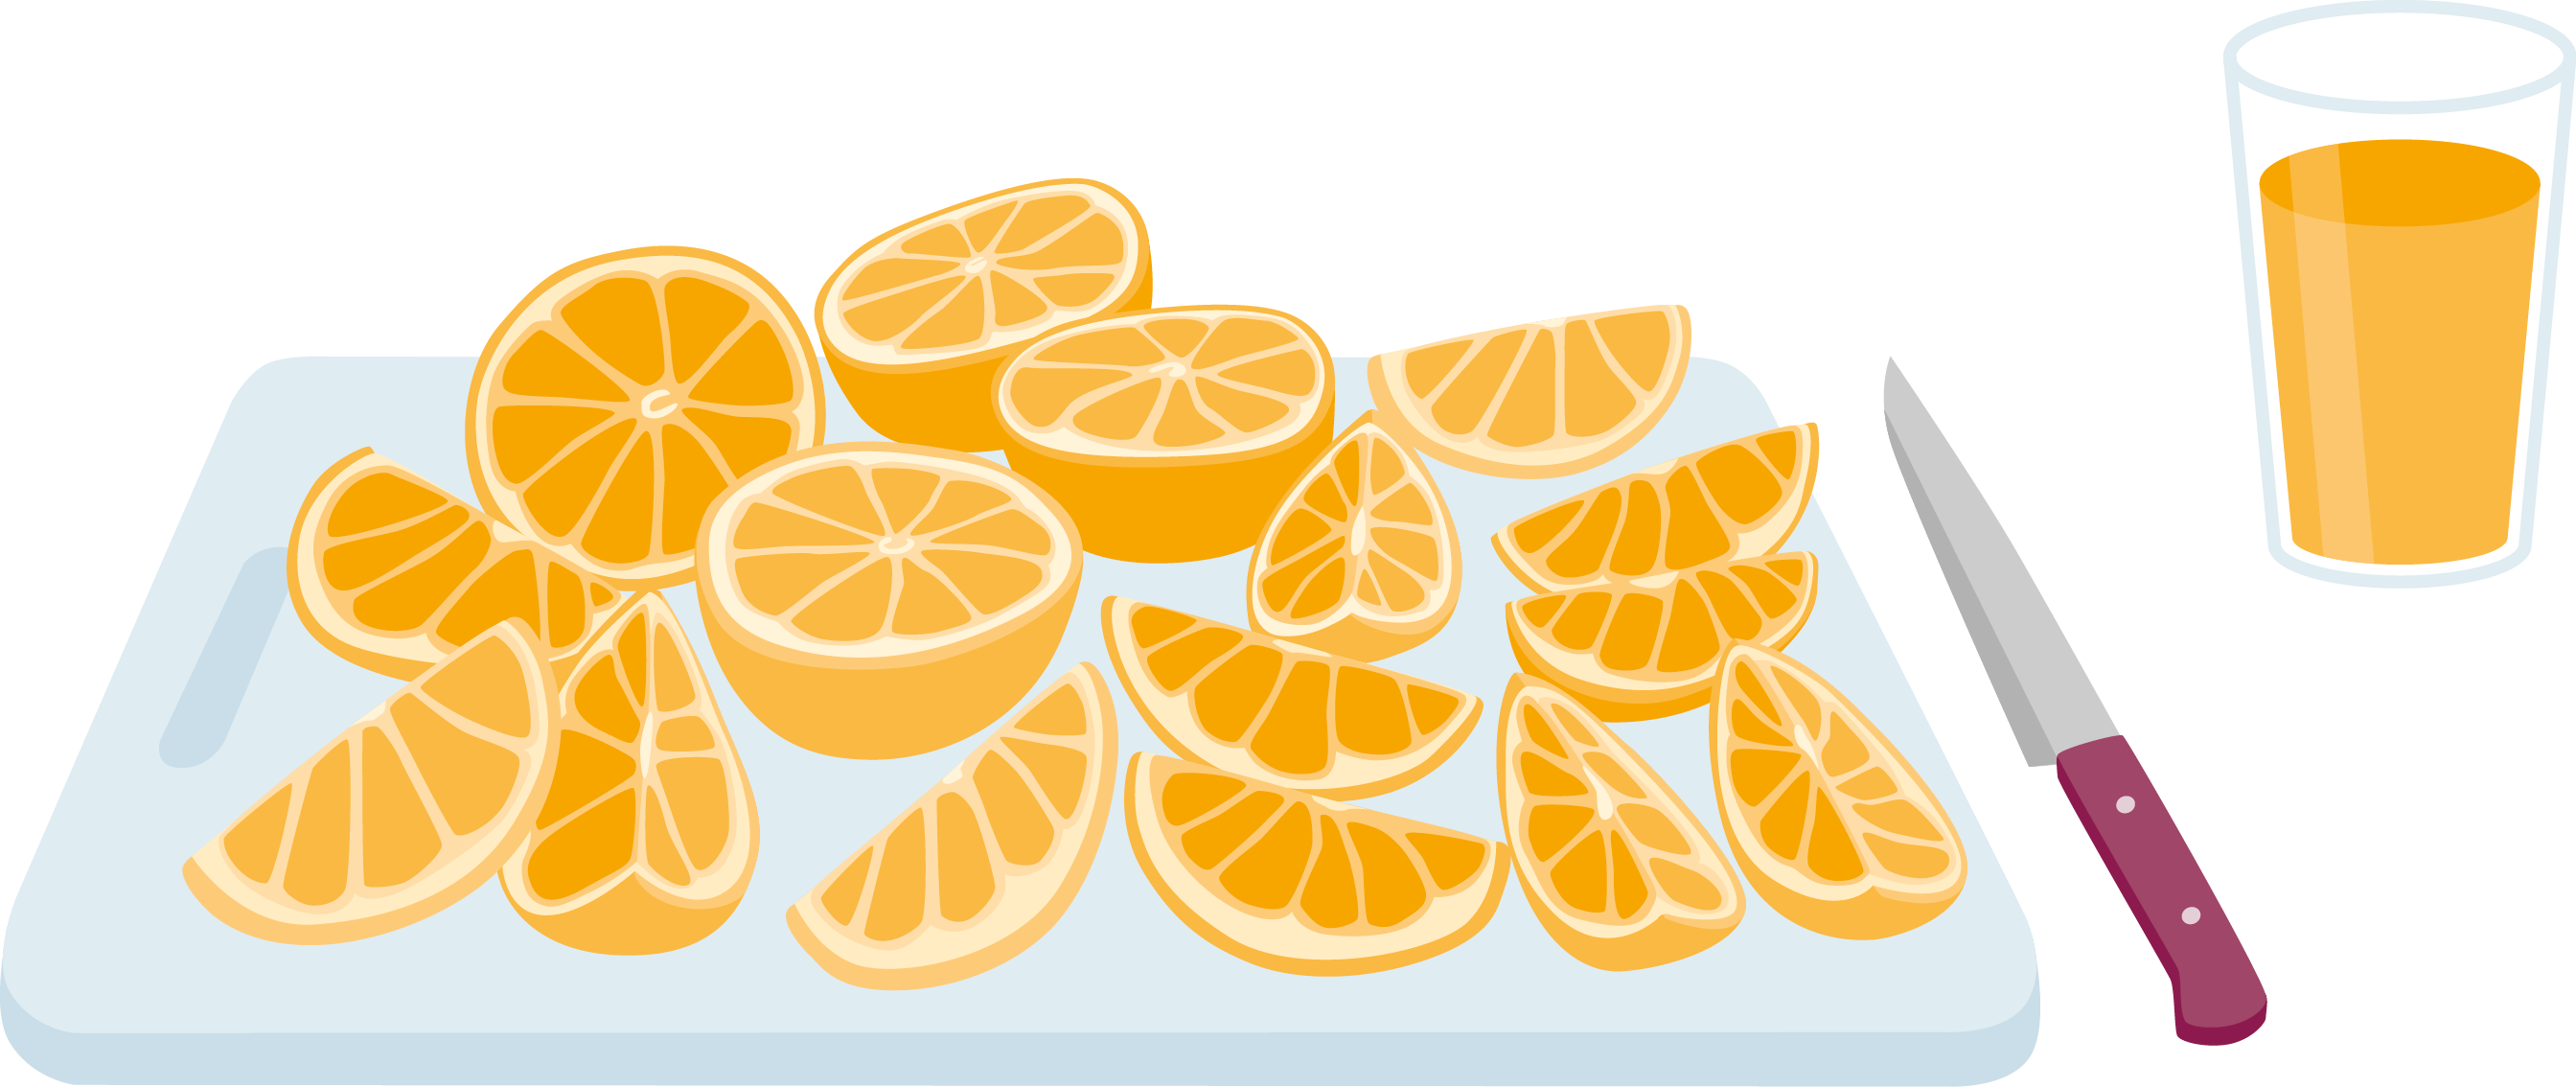 Gusto sugar and health infographic Orange Juice